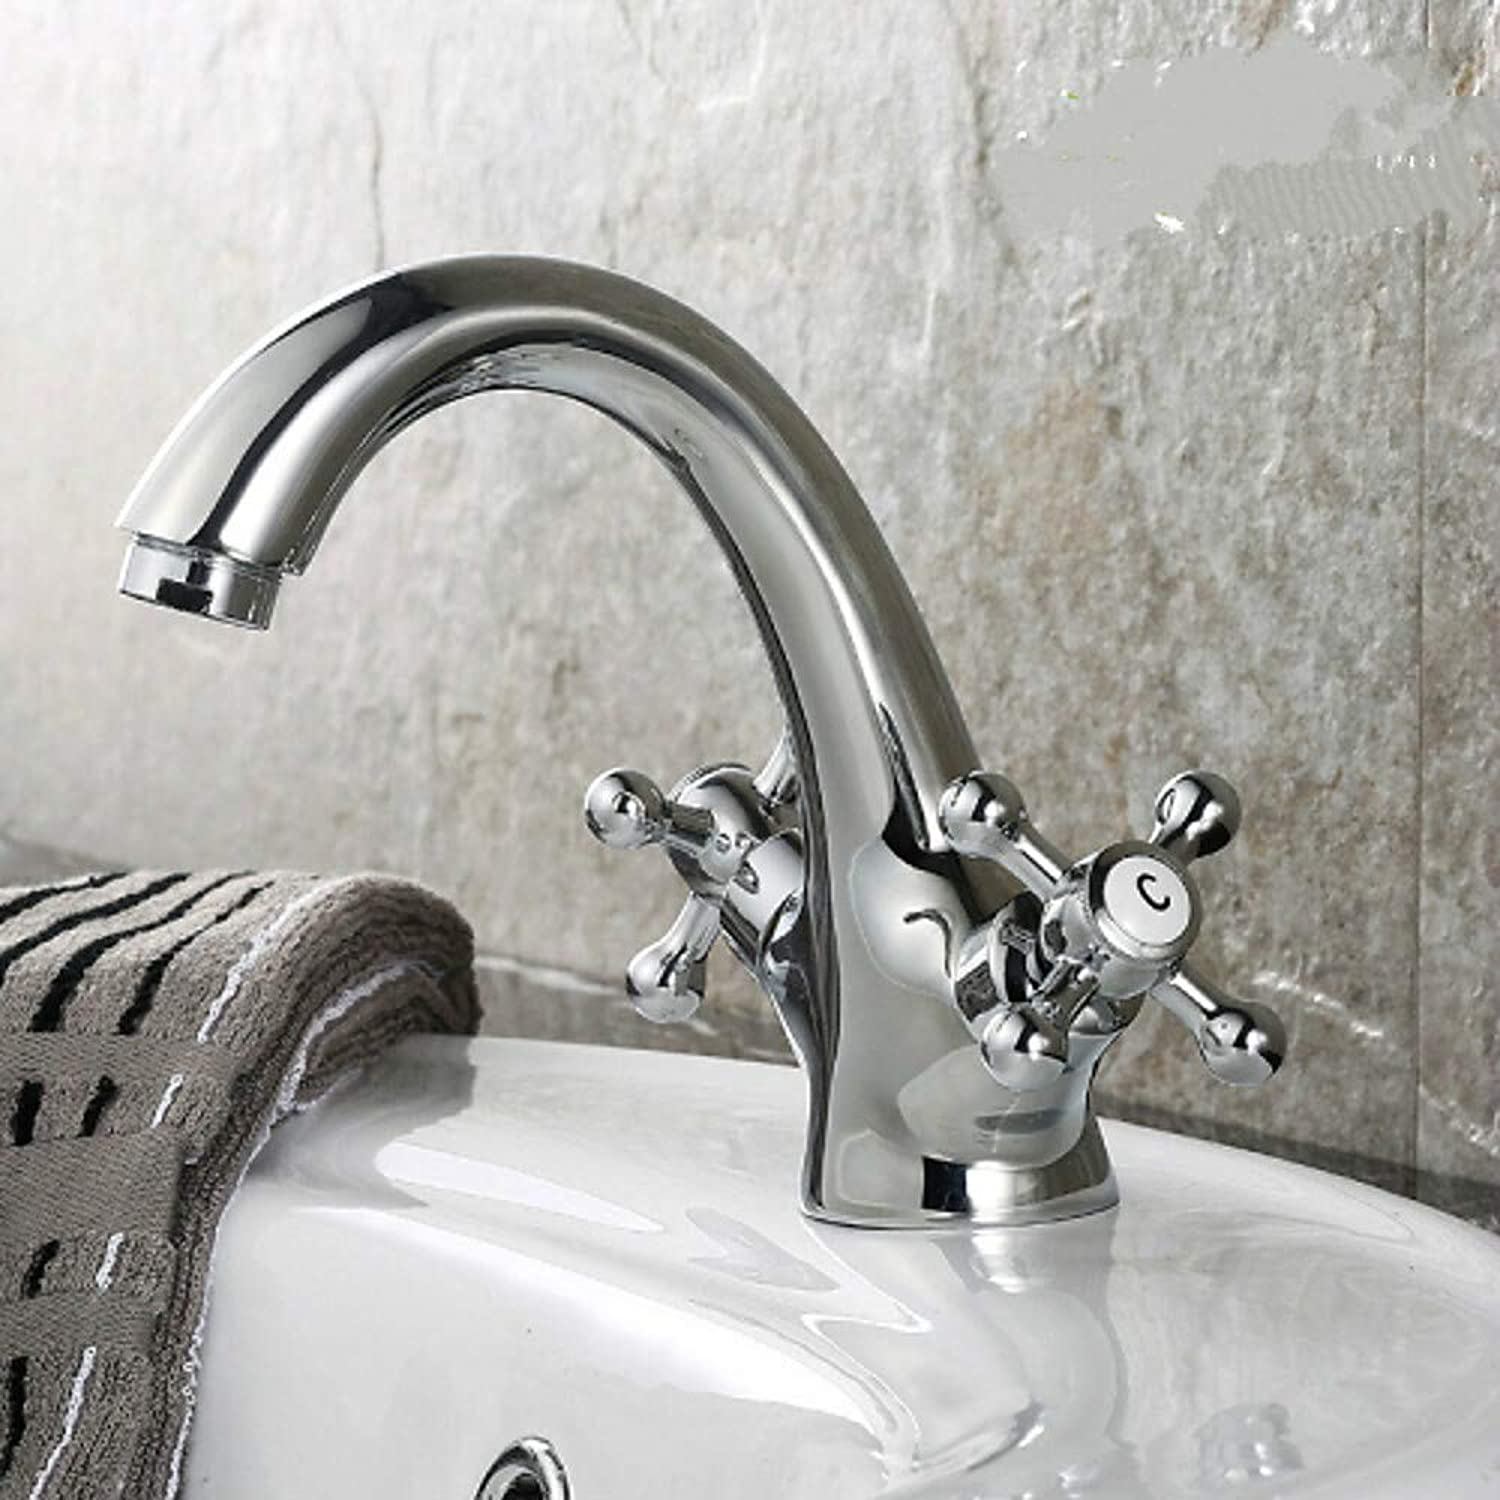 Traditional Centerset Ceramic Valve Two Handles One Hole Ti-PVD, Bathroom Sink Faucet,Silvery,Silvery